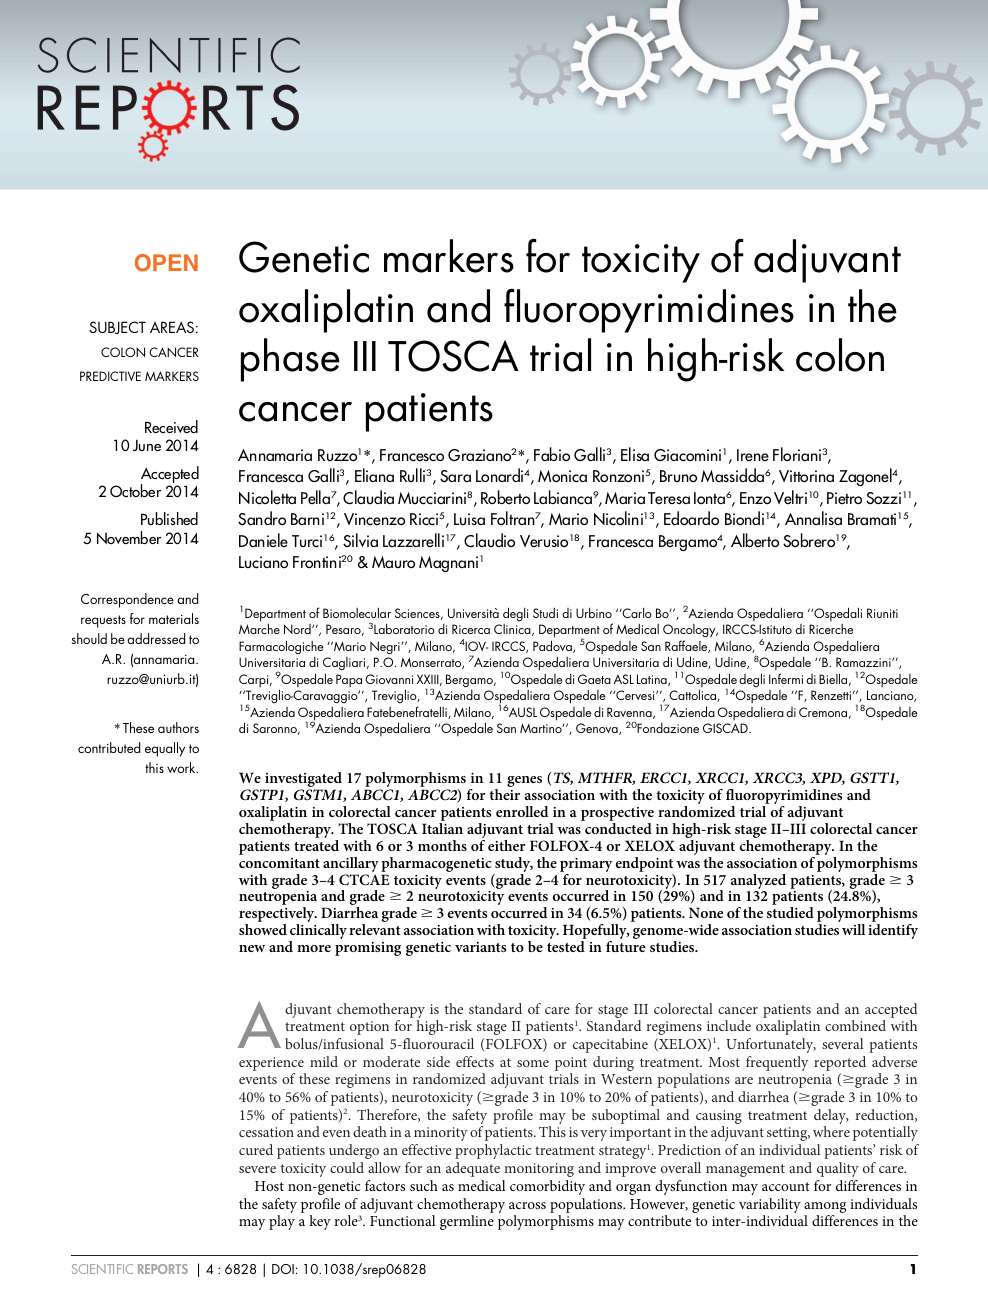 Genetic Markers For Toxicity Of Adjuvant Oxaliplatin And Fluoropyrimidines In The Phase Iii Tosca Trial In High Risk Colon Cancer Patients Topic Of Research Paper In Clinical Medicine Download Scholarly Article Pdf